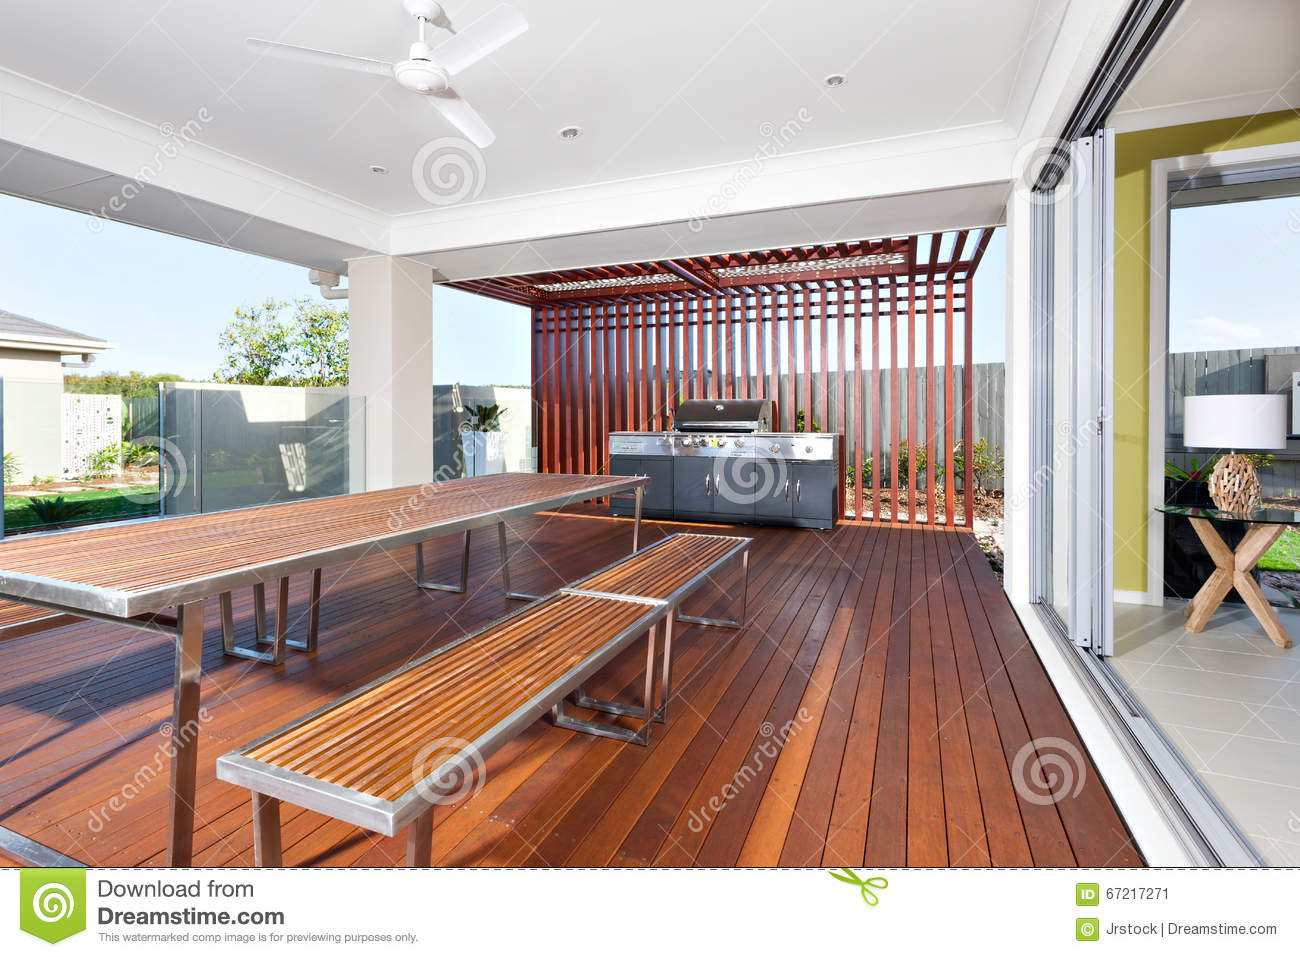 long wooden table and benches with modern grill cabinet in a lu . royaltyfree stock photo